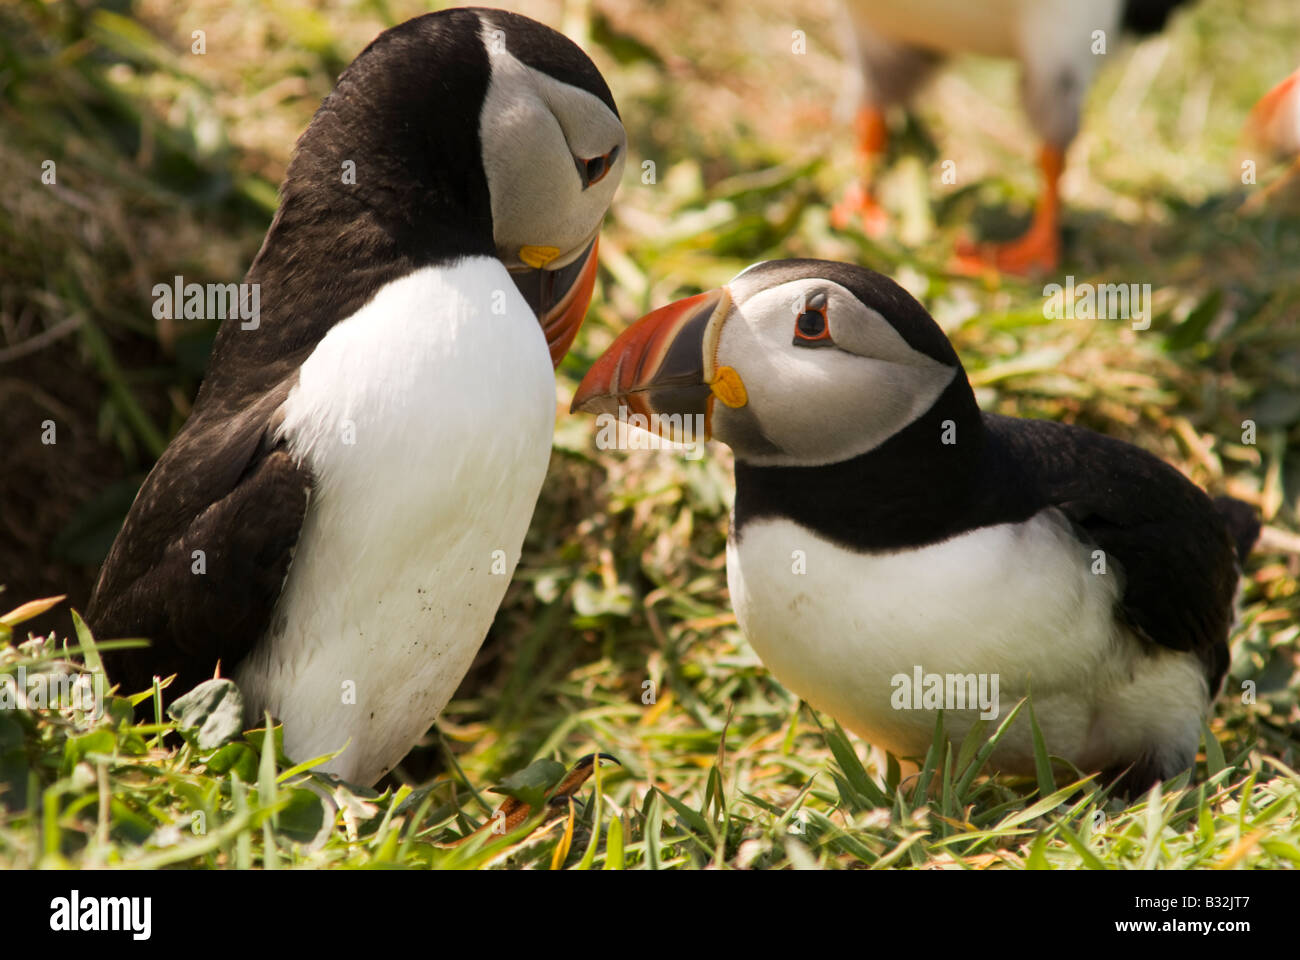 two puffins billing their bills as a sign of courtship - Stock Image